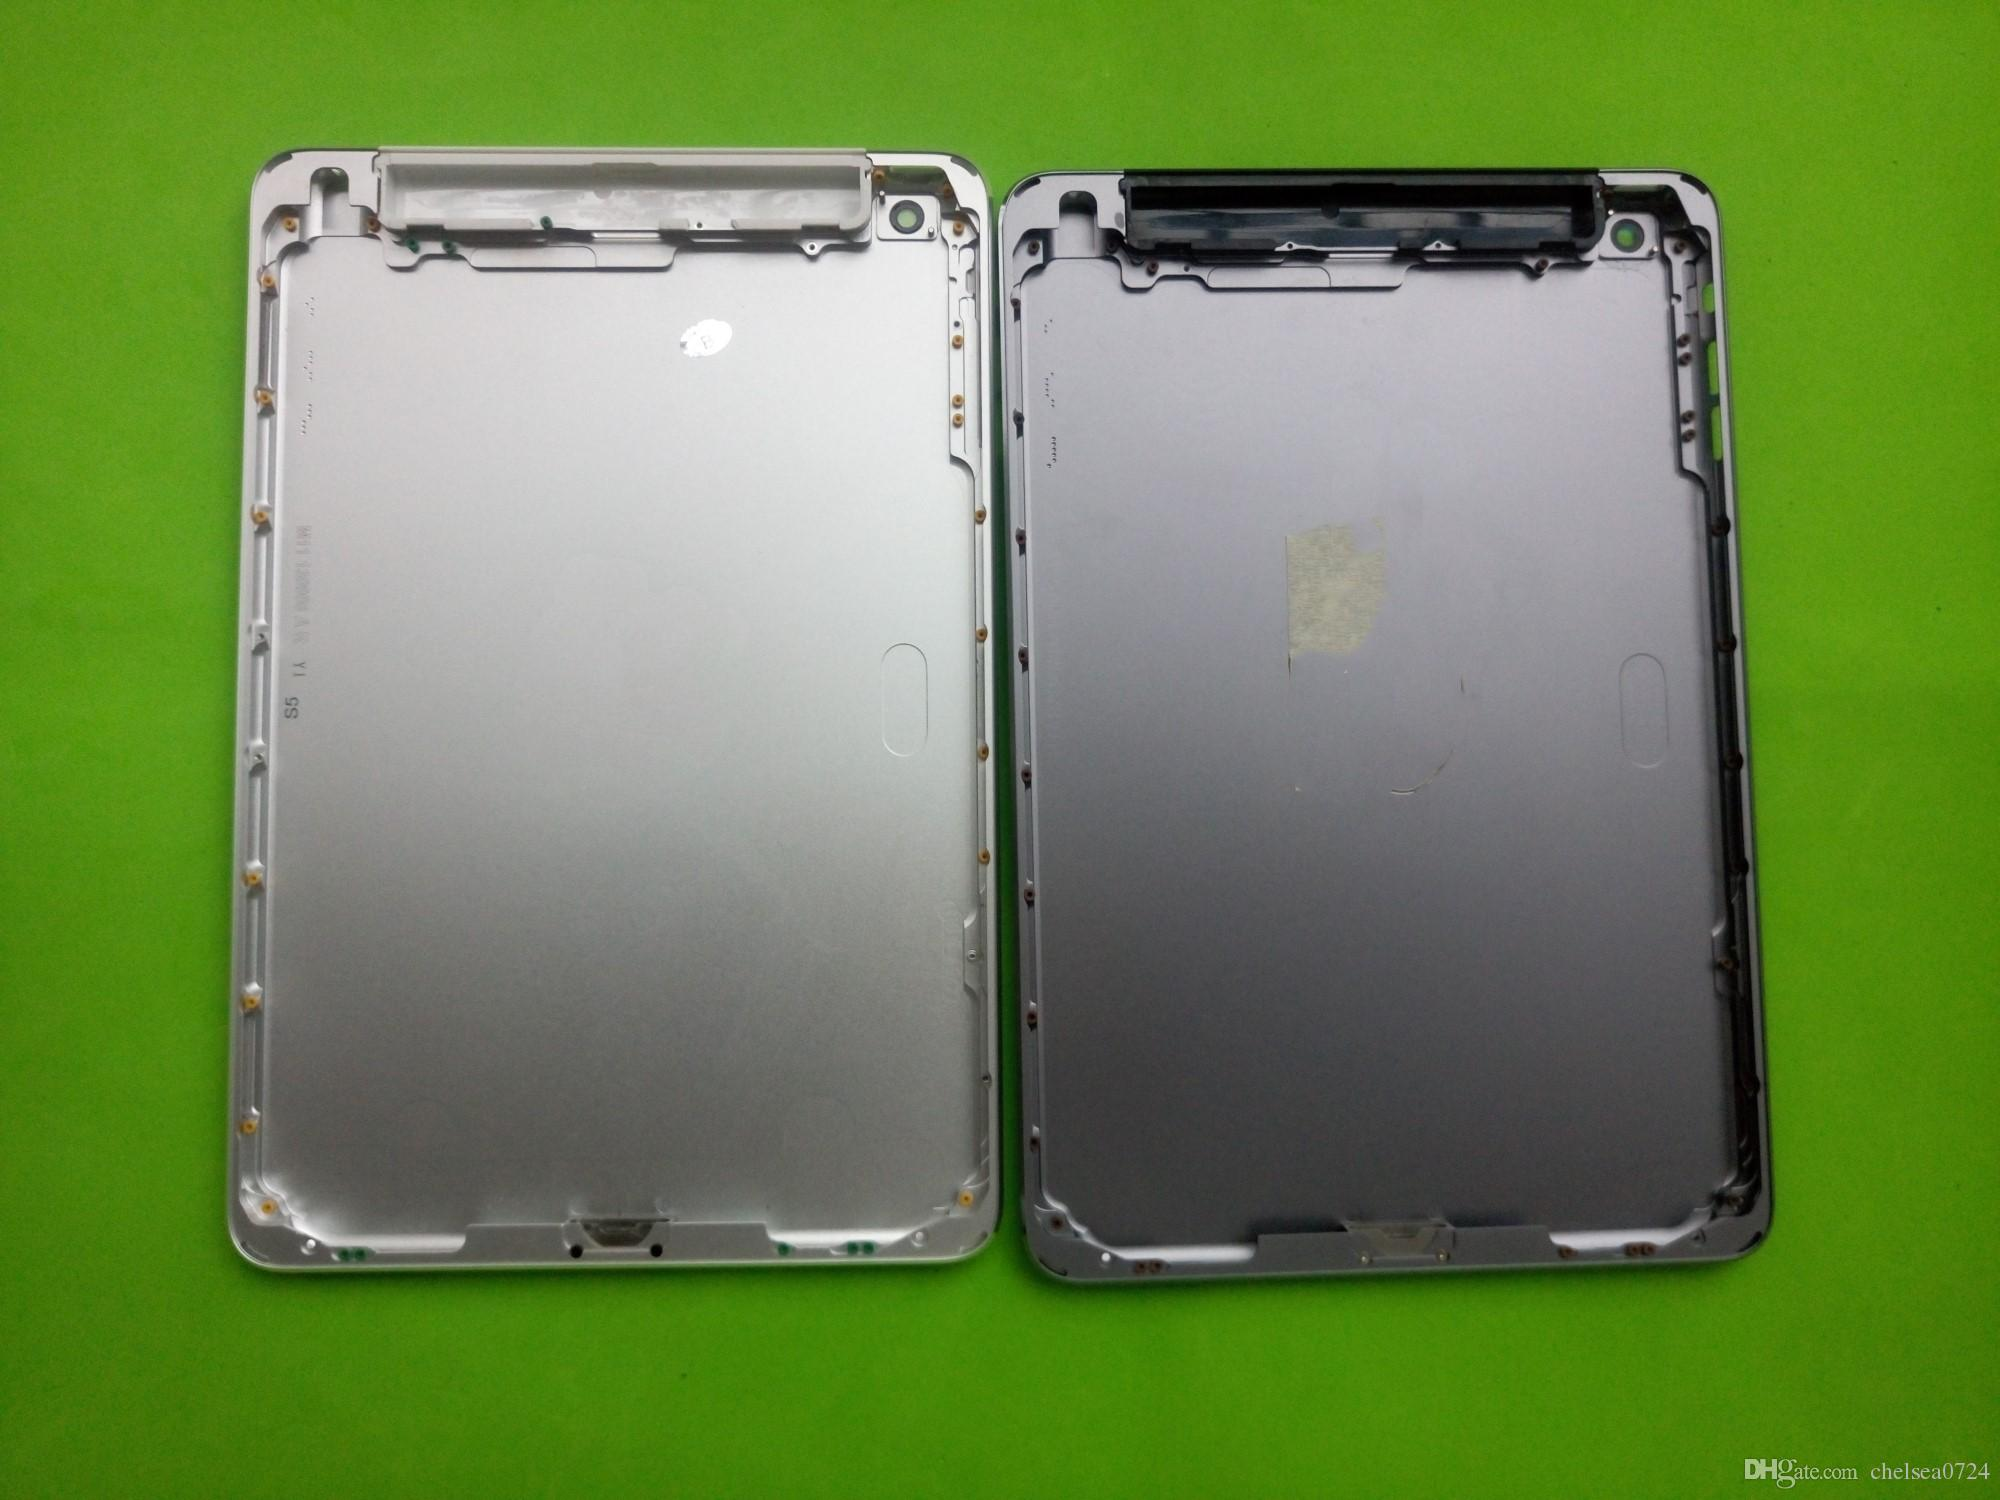 Brand New For ipad Mini 1 WiFi+CELLULAR 3G 4G Version A1454 A1455 Rear Housing Back Cover Frame Battery Door Bezel Case With Logo